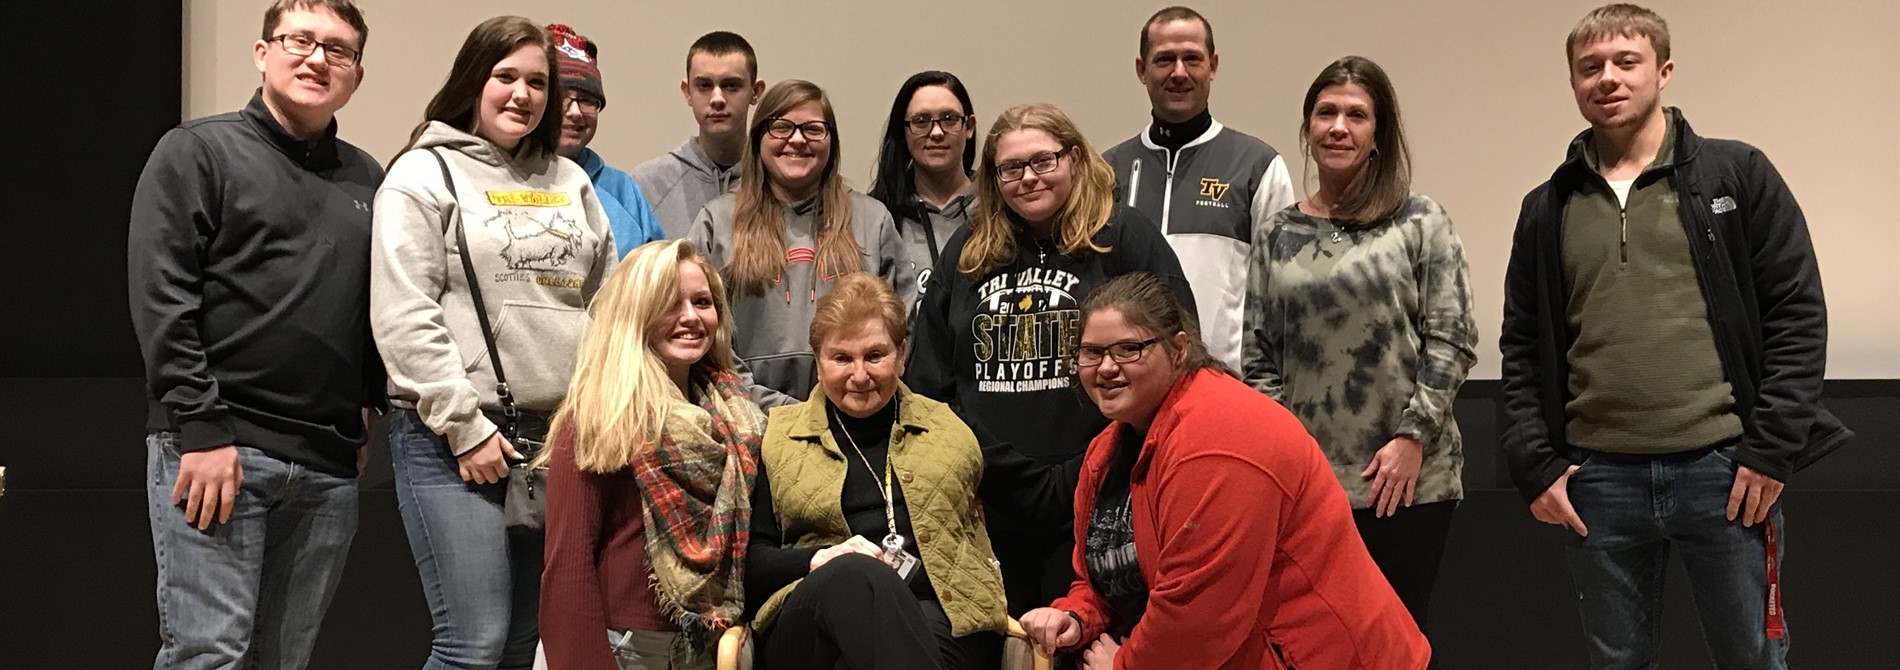 Mr. Sims Holocaust class had an opportunity to visit the United States Holocaust Memorial Museum and hear survivor Josie Traum's testimony.